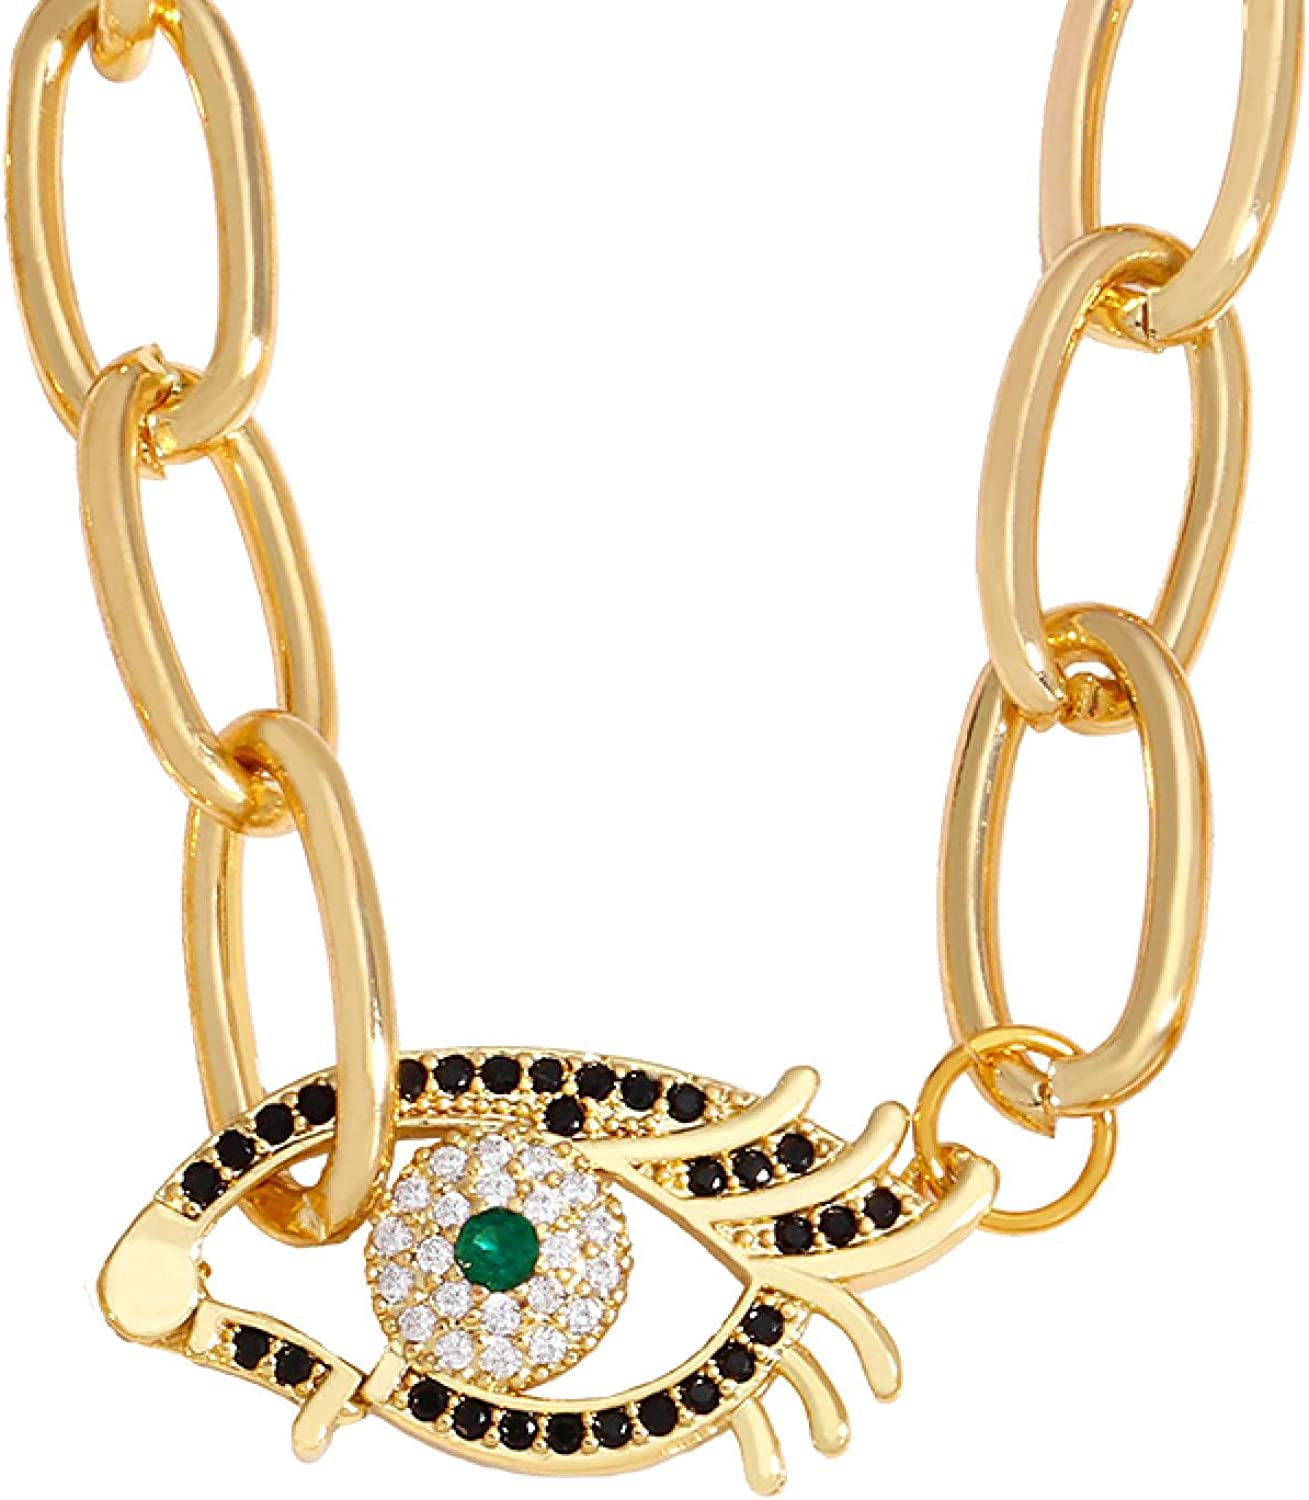 Gold Chain Blue Evil Eye Necklace Green Crystal Oval Choker Neck